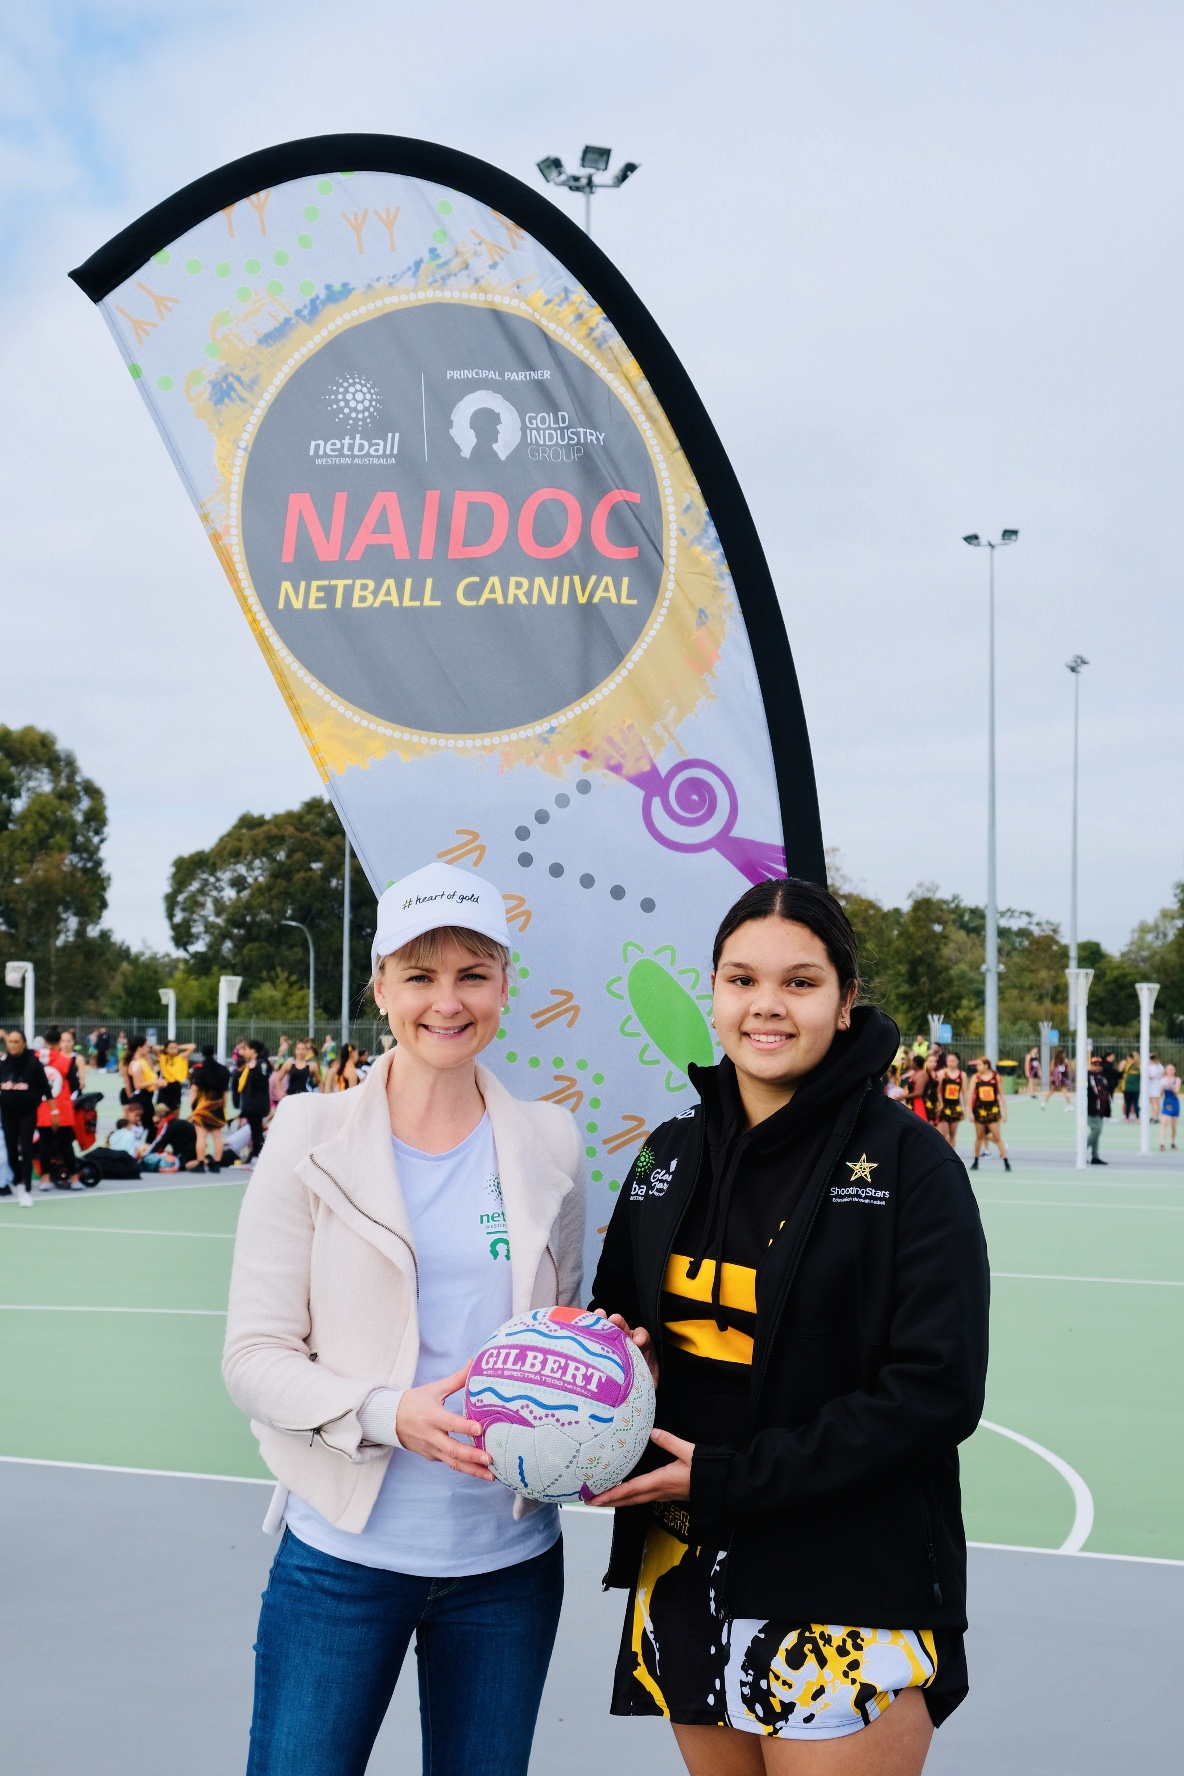 GIG Executive Officer Rebecca Johnston with Aboriginal artist and NAIDOC Netball Carnival designer Shontae Jetta.